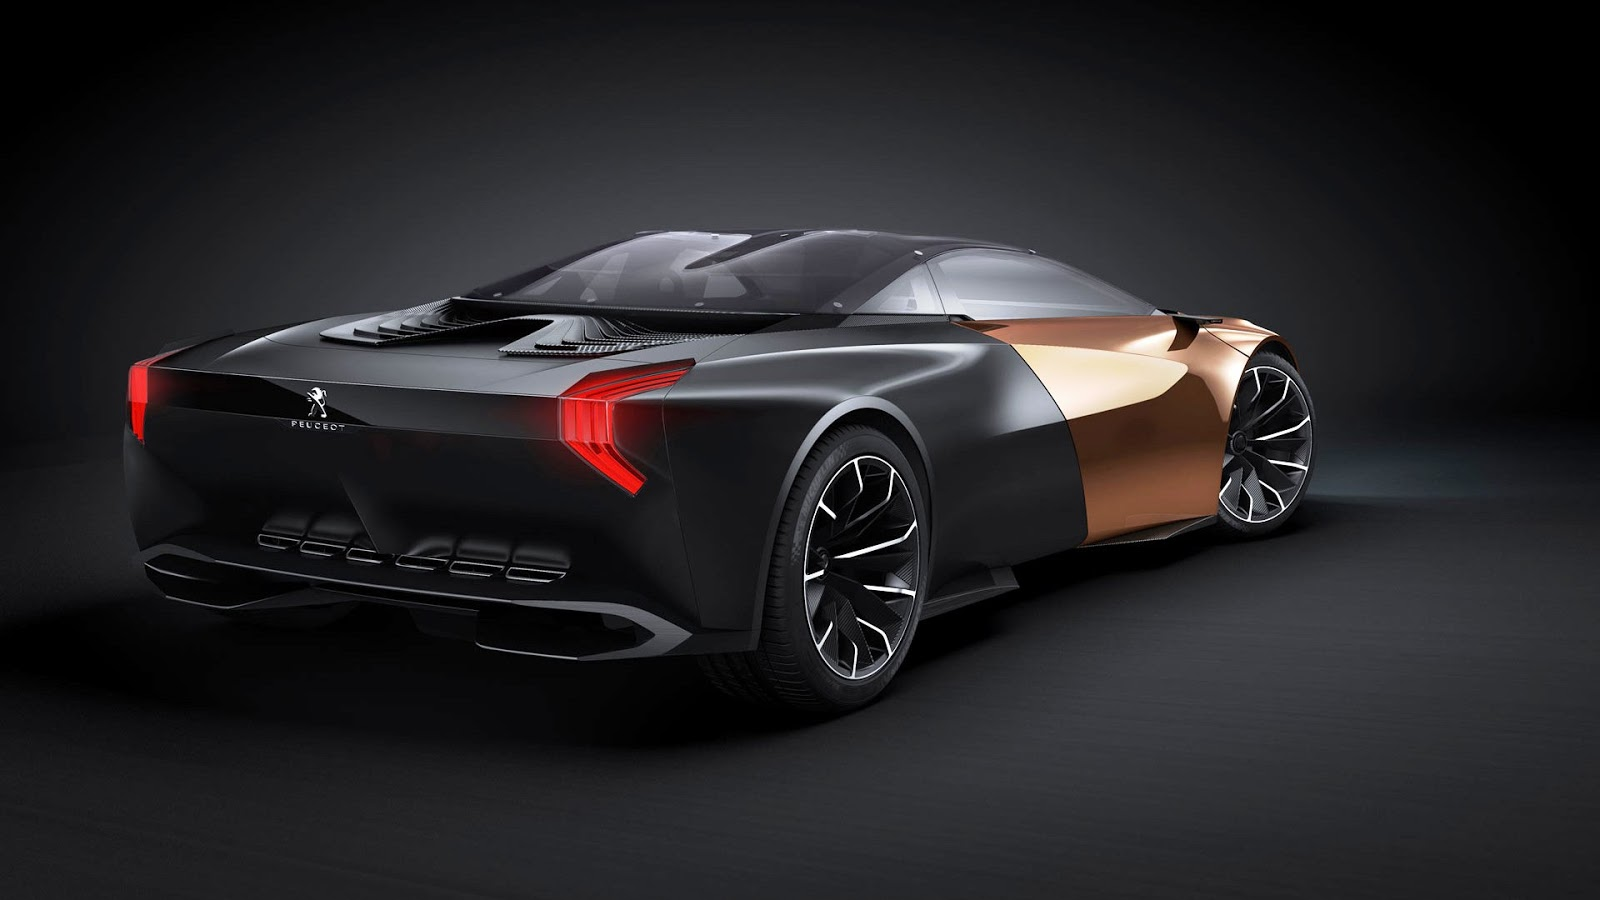 Full HD Exotic Car Wallpapers: 2012 Peugeot Onyx Concept